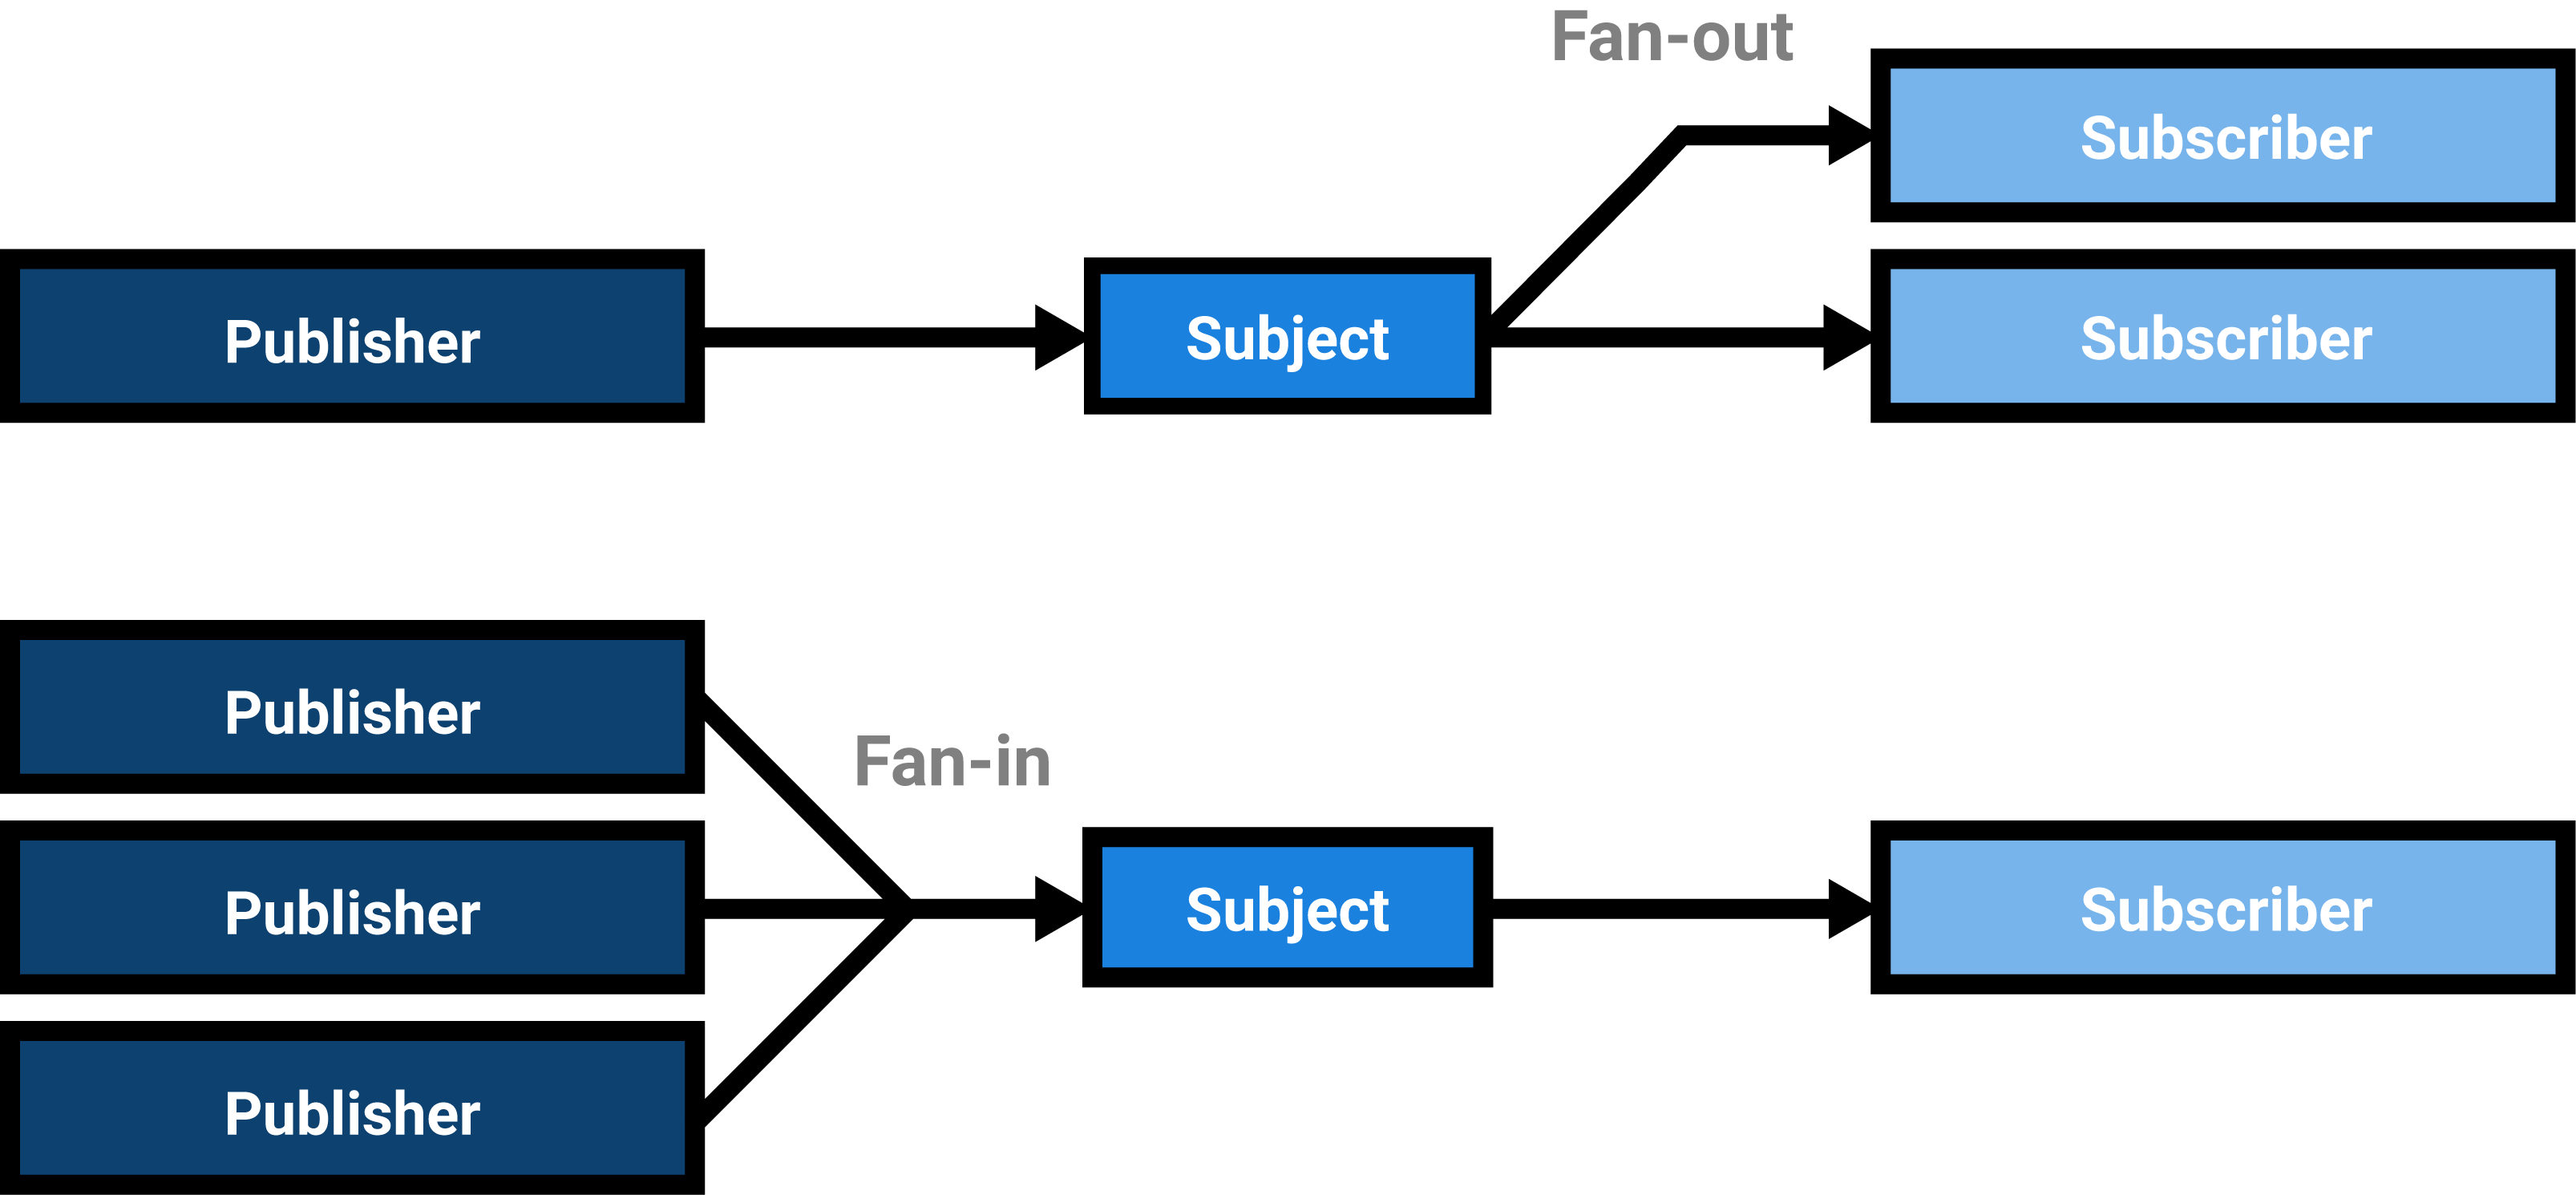 A fan-in means that multiple publishers publish to a subject, fan-out means that there are many subscribers to a subject.